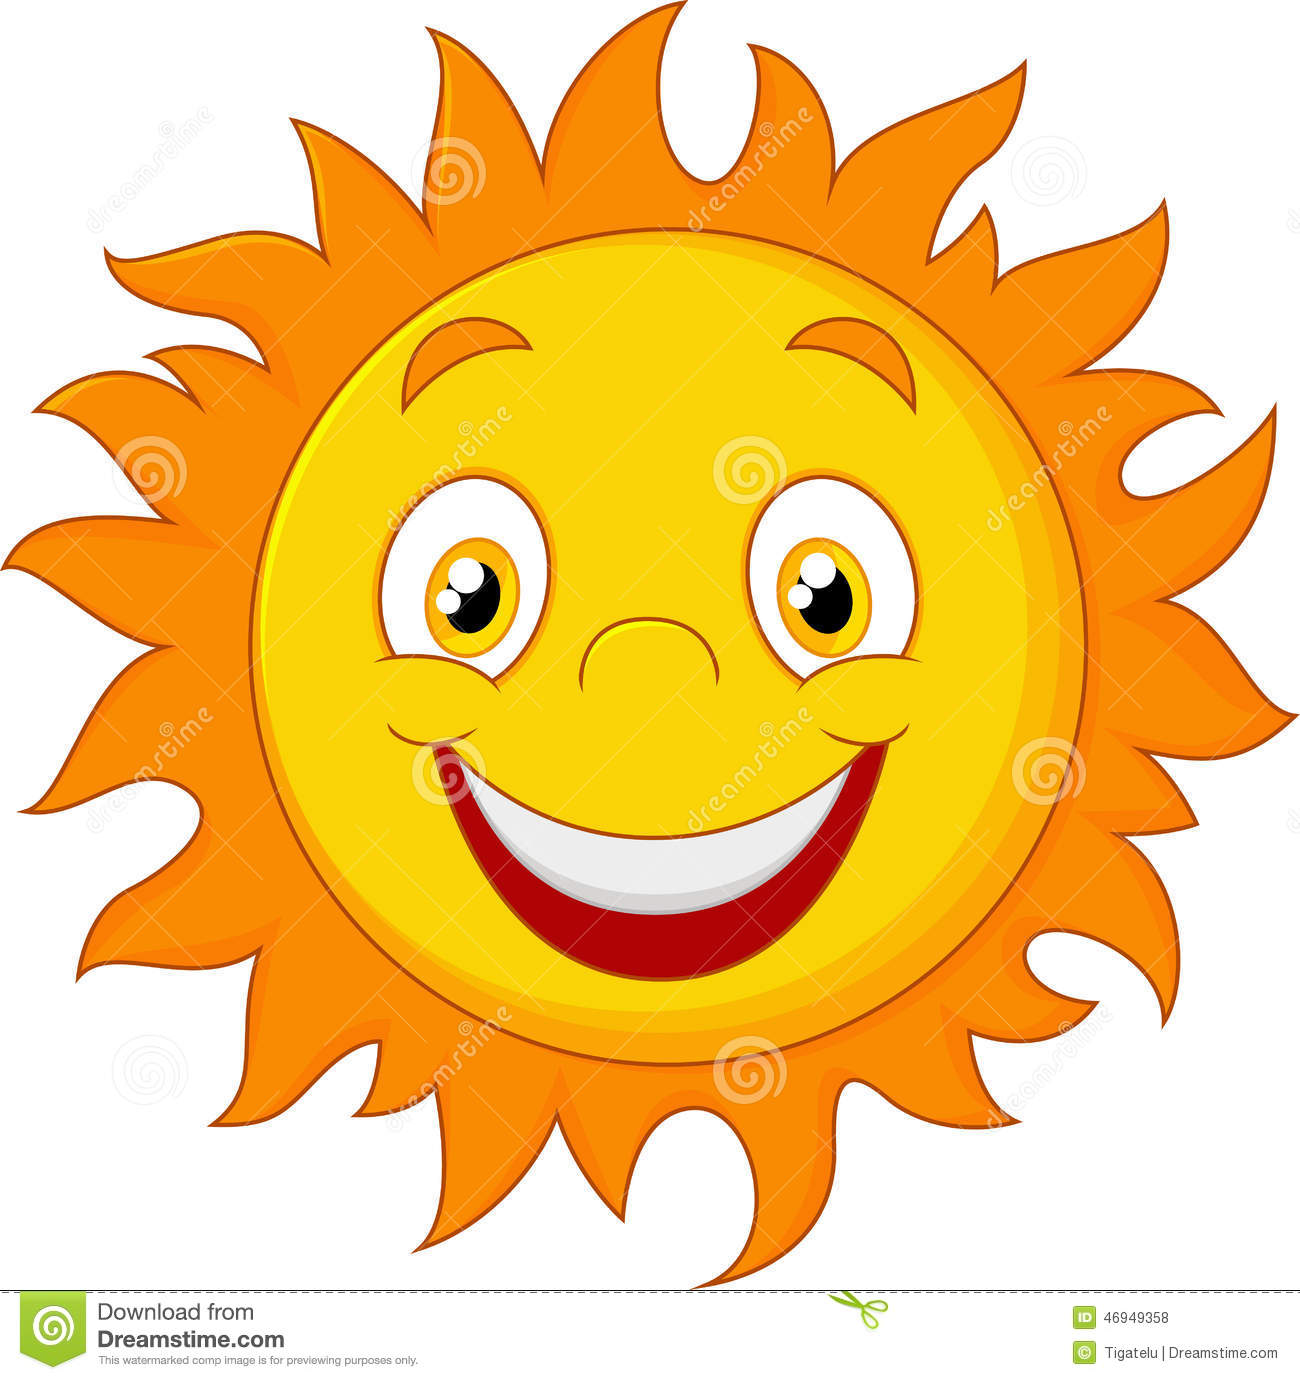 List of synonyms and antonyms of the word happy sun cartoon for Coute synonyme